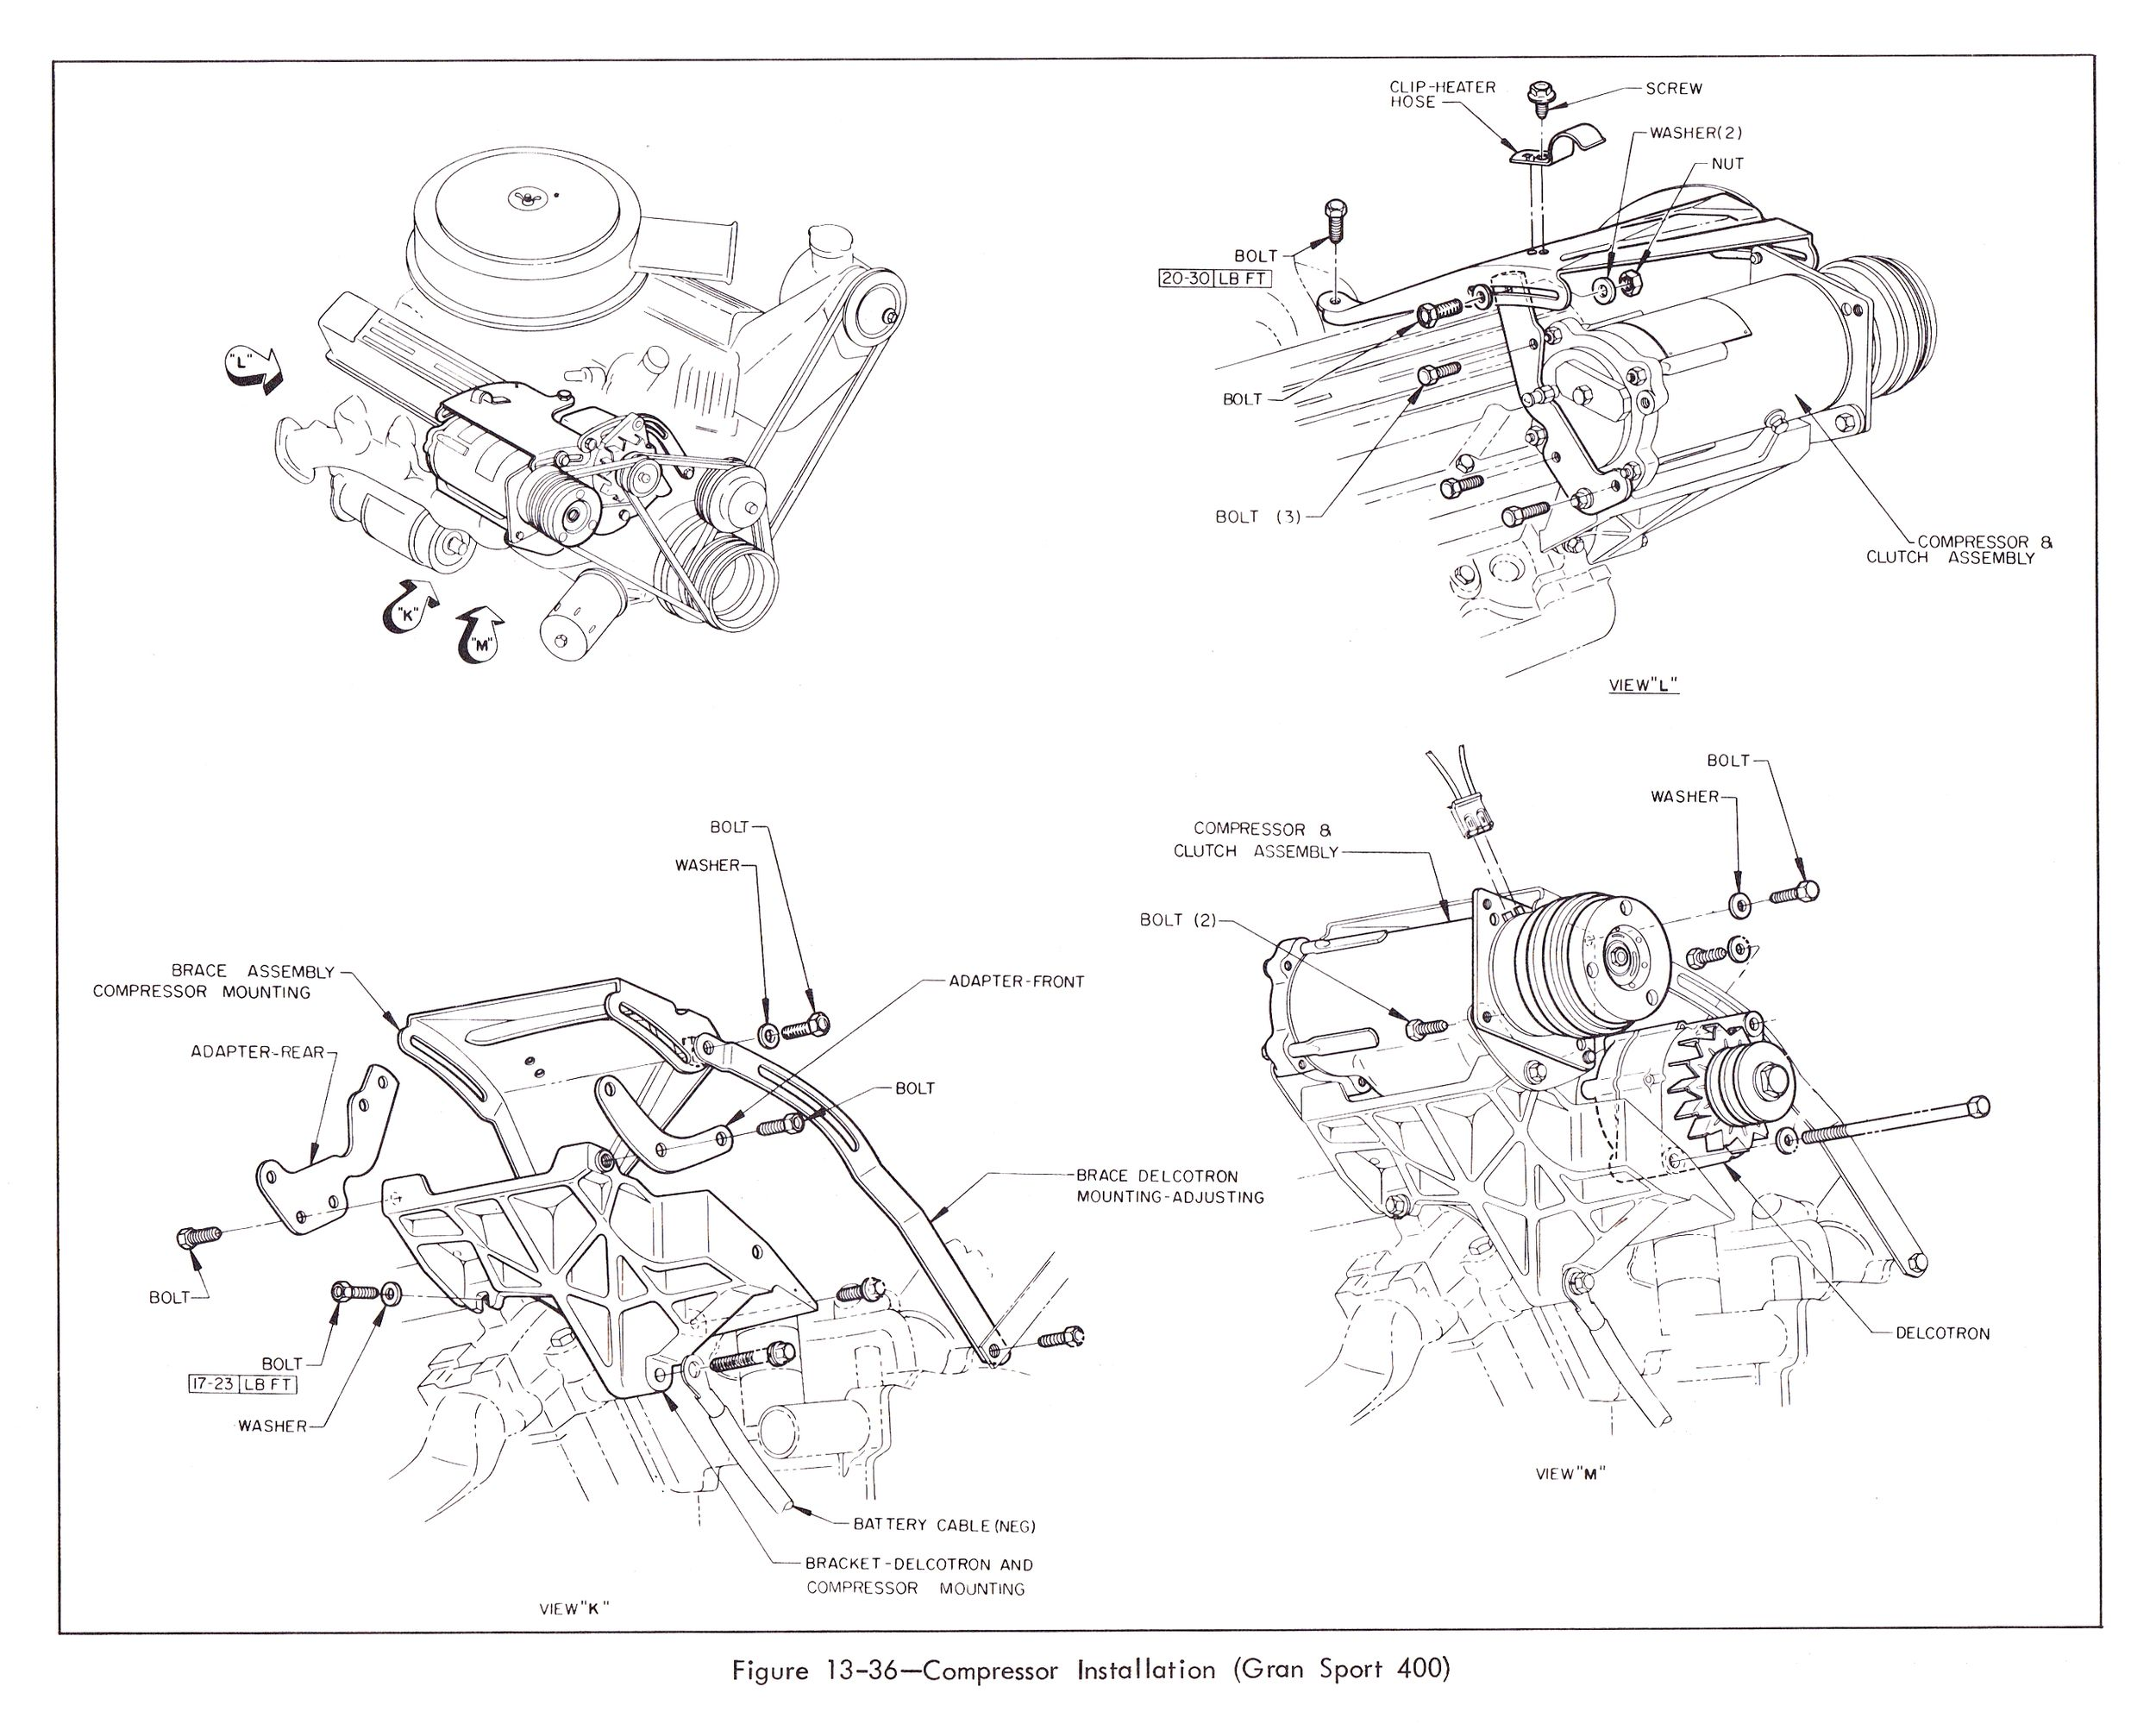 Buick Reatta Fuse Box Diagram. Buick. Auto Wiring Diagram